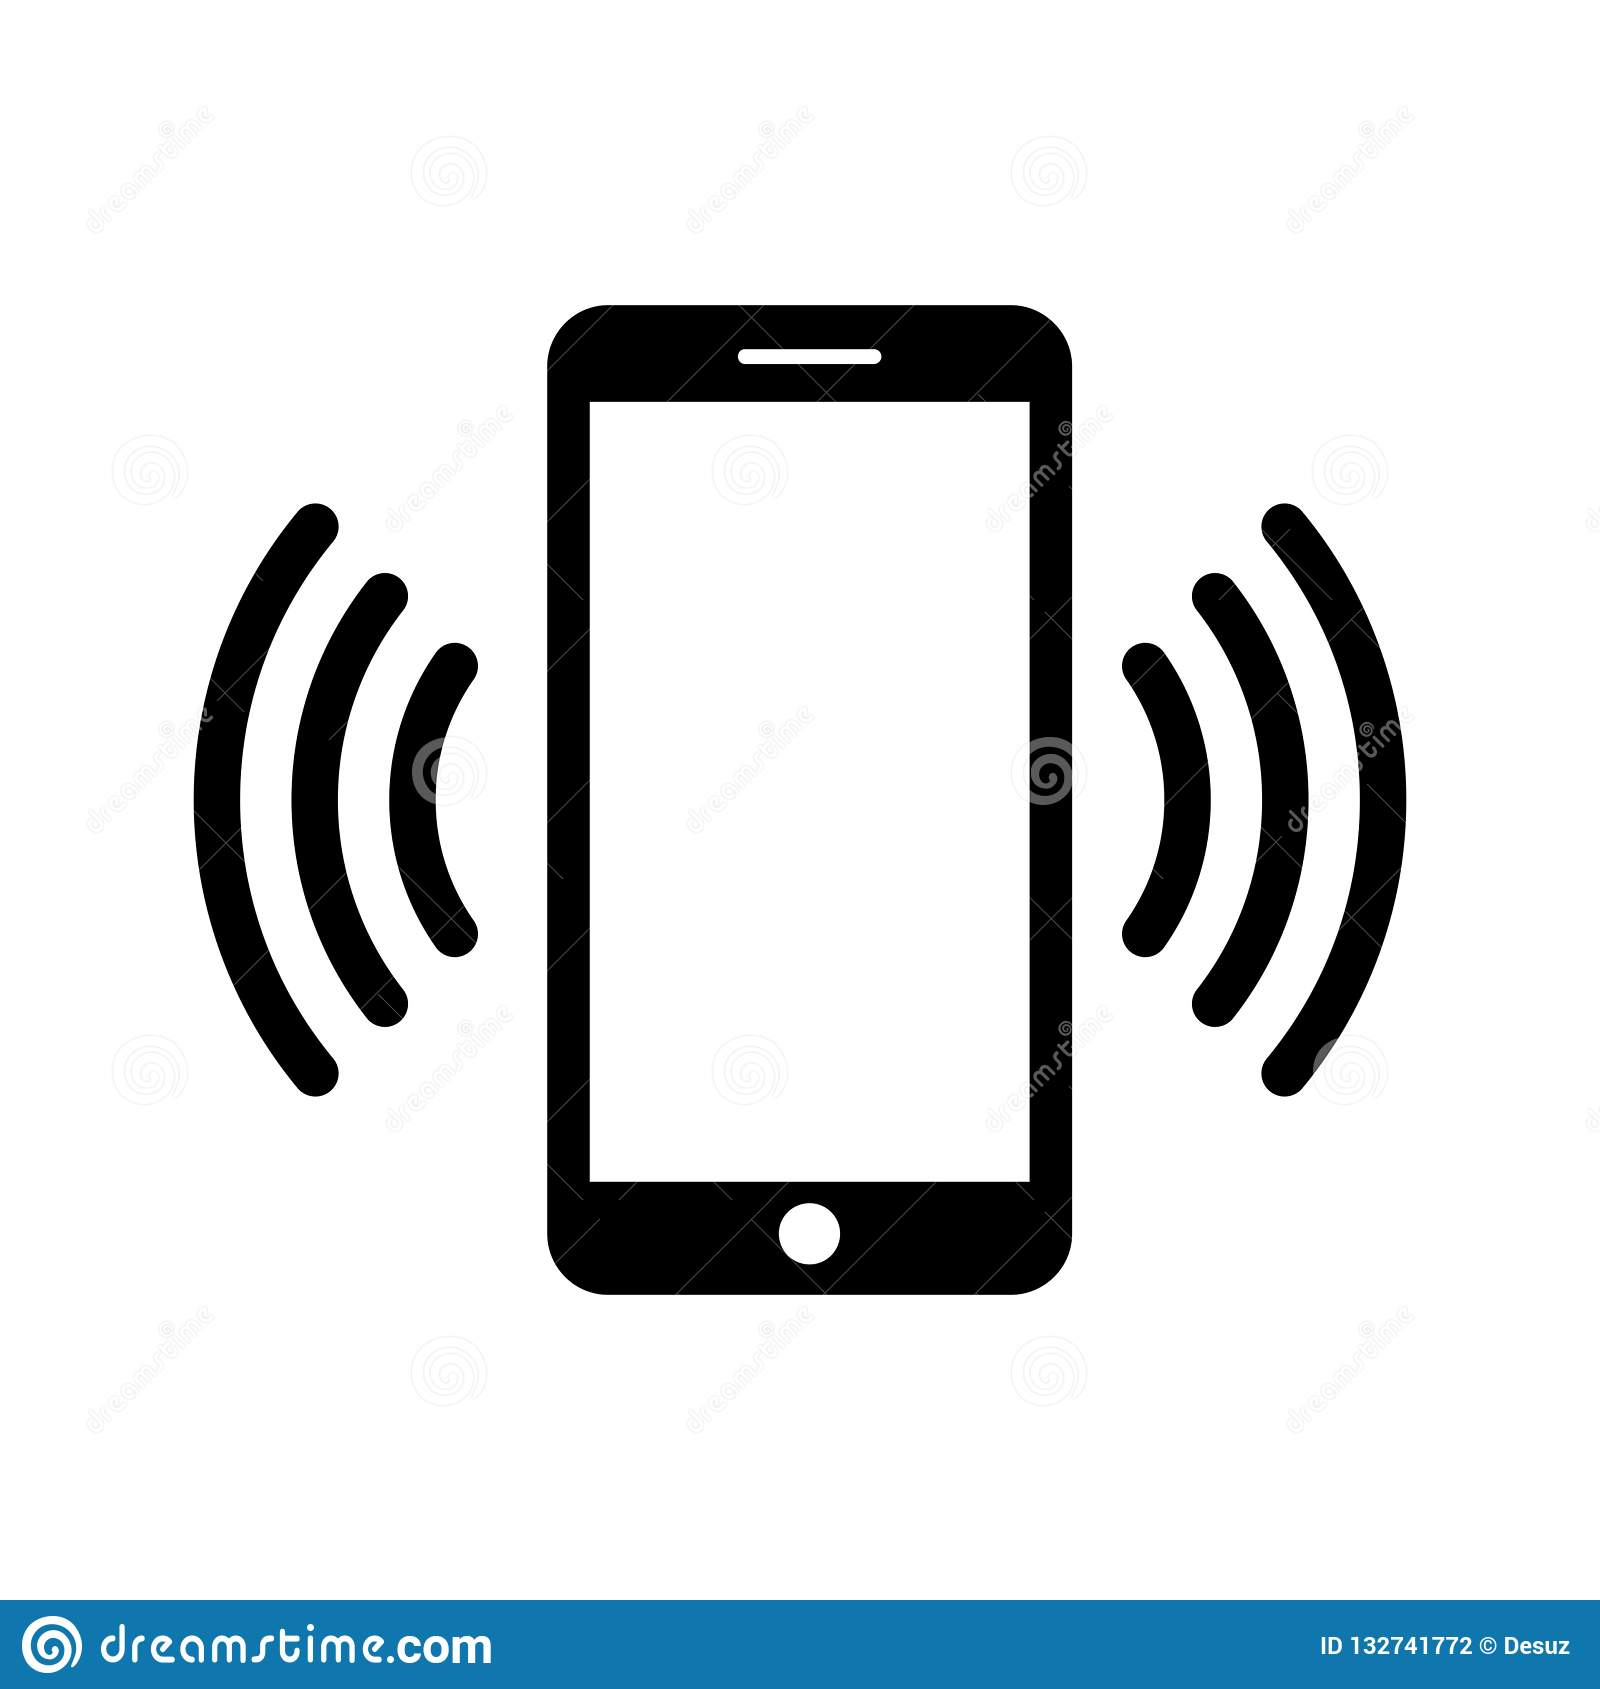 Phone Icon In Black And White. Telephone Symbol. Vector Illustration.